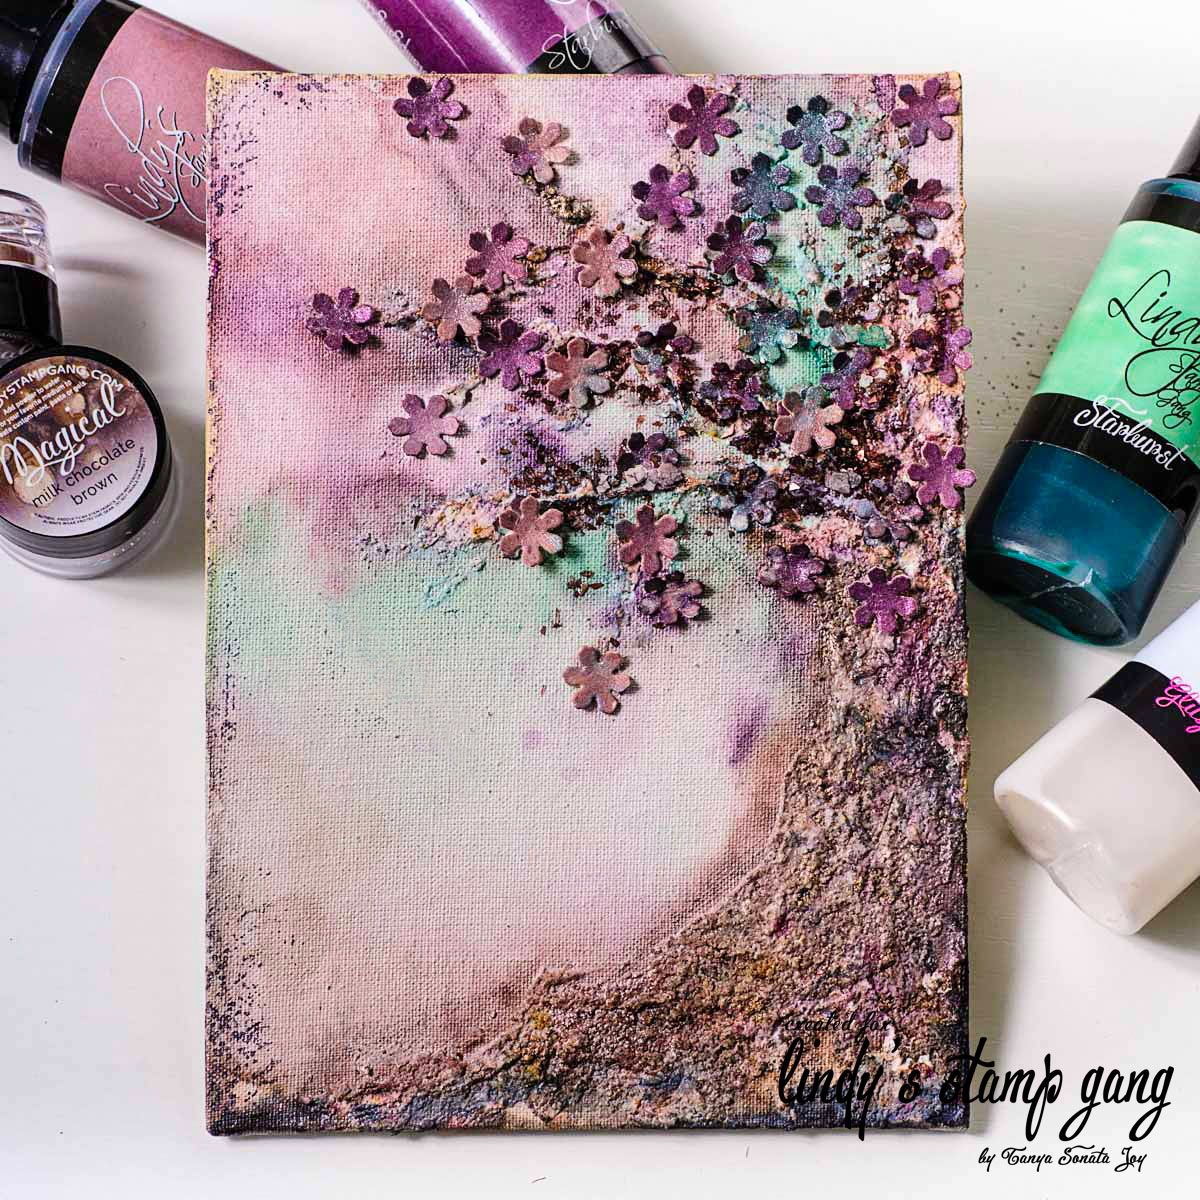 Hello everyone! It's Tanya here. Today I would like to show you my new canvas. I created it with amazing colors from Lindy's Stamp Gang January Color Challenge and same color magicals. The color pa...